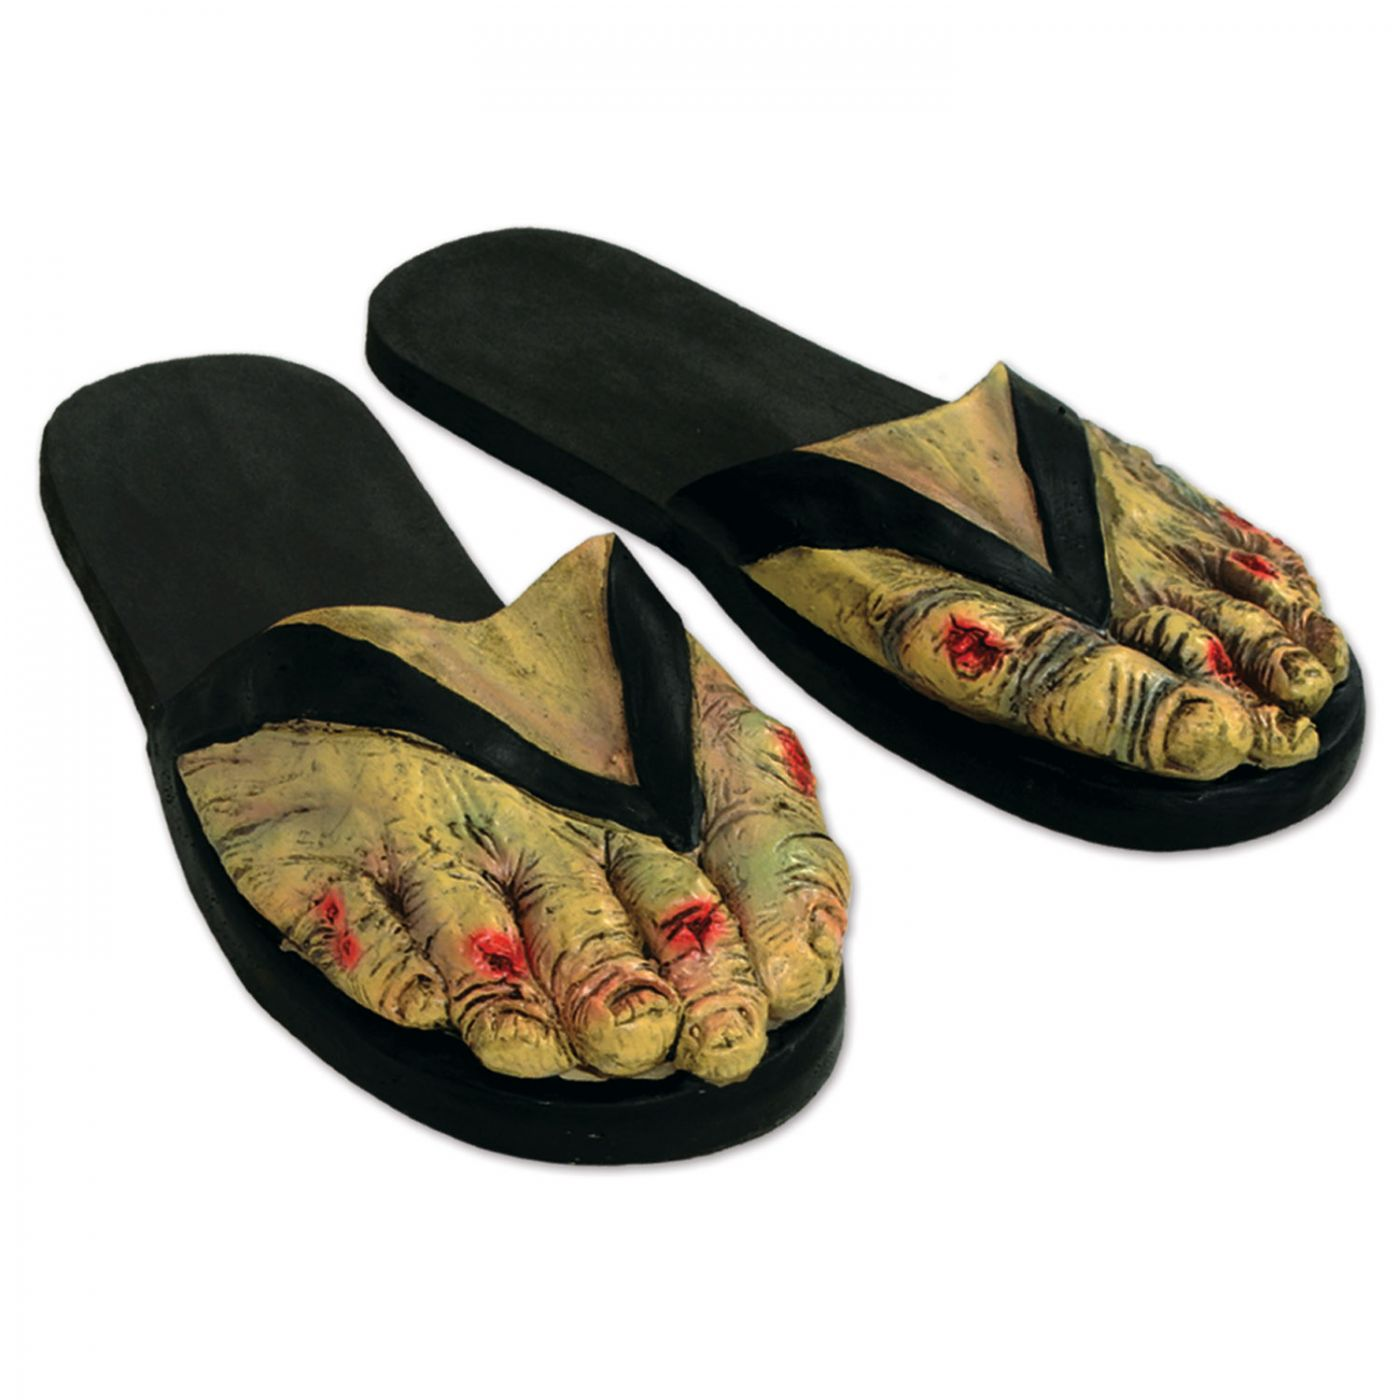 Zombie Feet Slippers (6) image